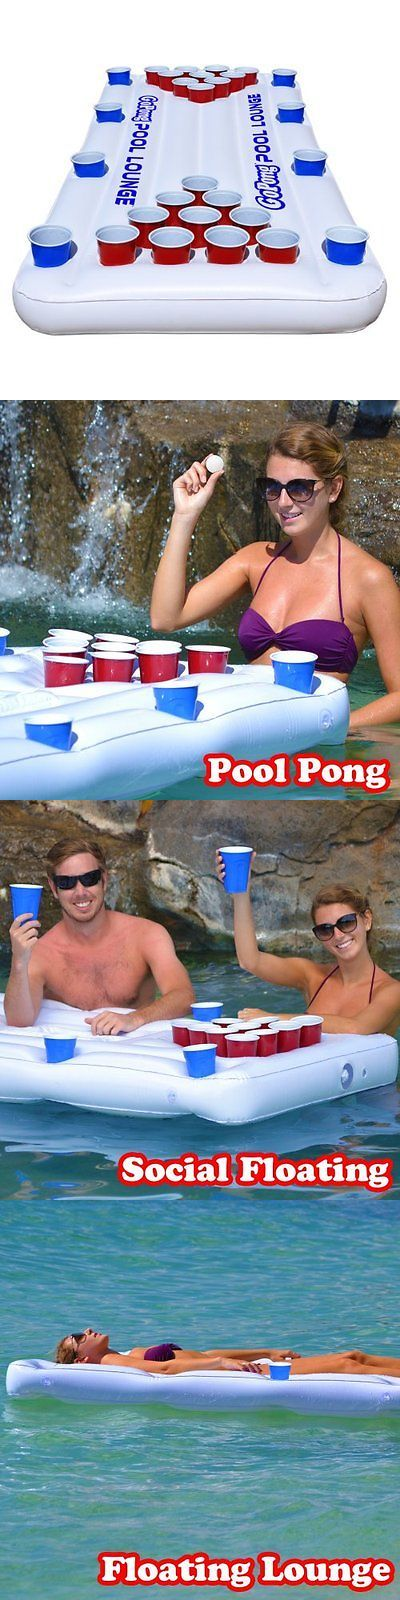 Other Table Tennis Ping Pong 97076: Gopong Pool Lounge Beer Pong Inflatable With Social Floating, White New BUY IT NOW ONLY: $45.08